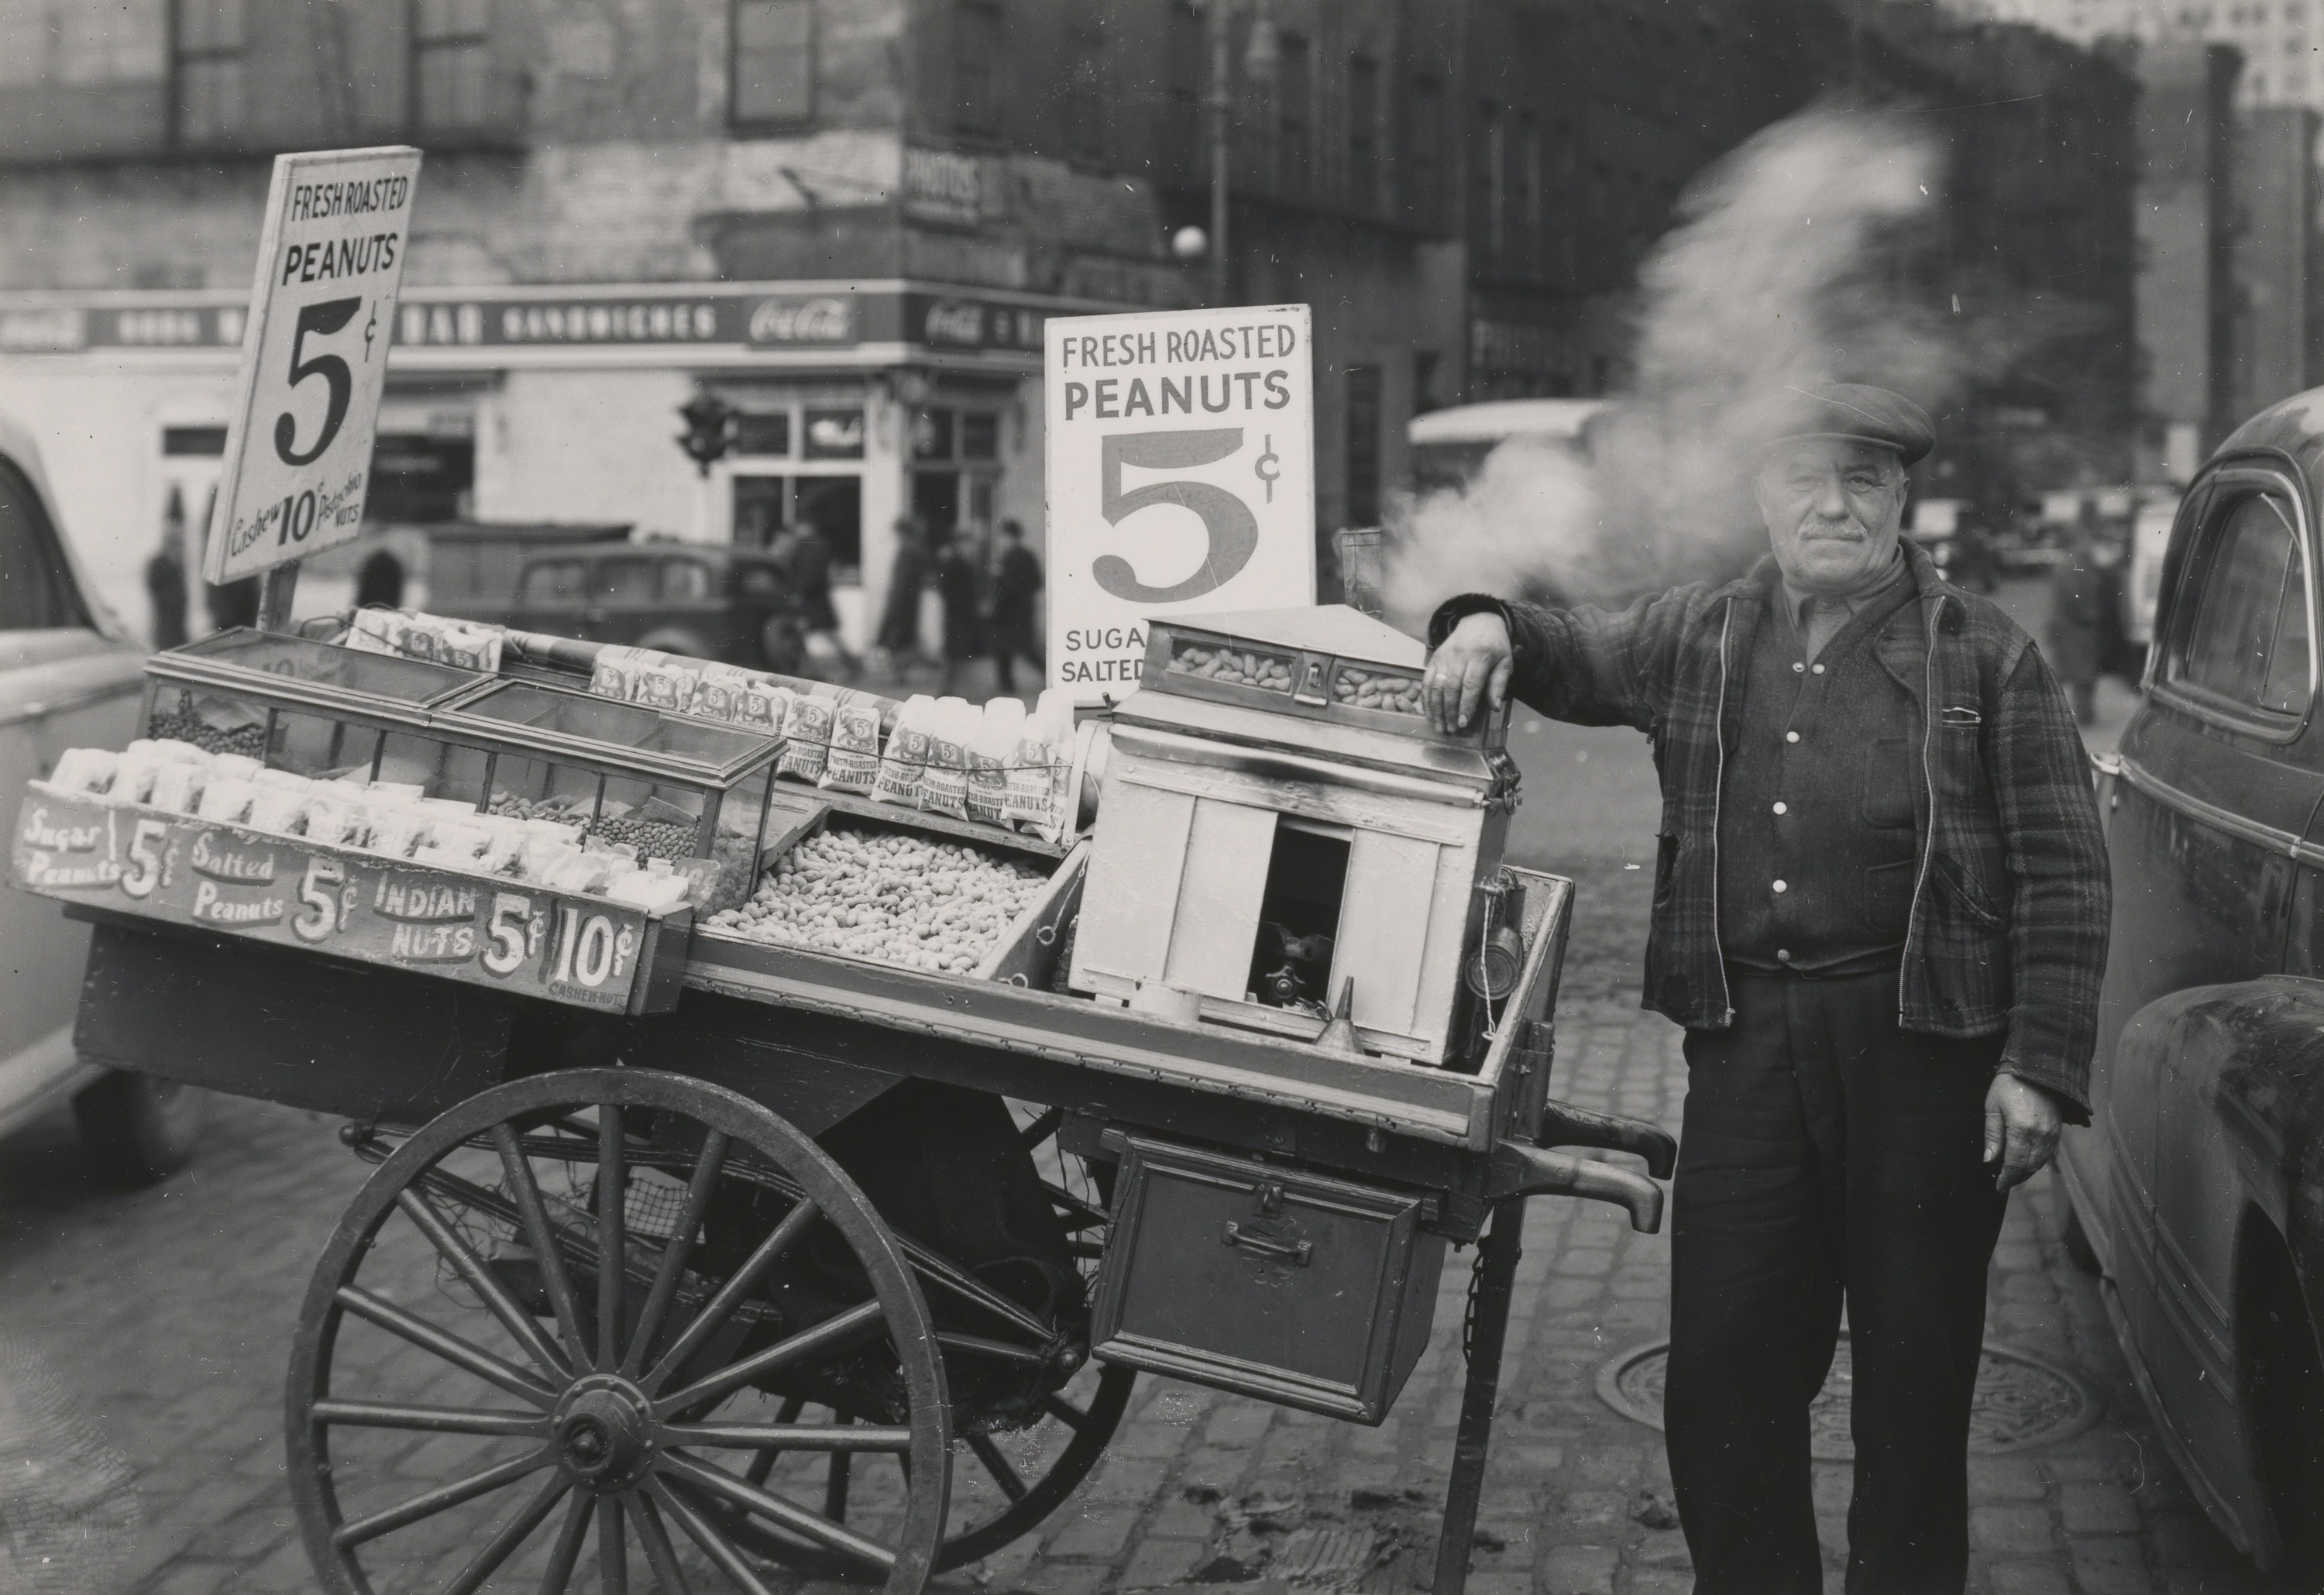 The Battery, New York (Peanut Peddler), 1945